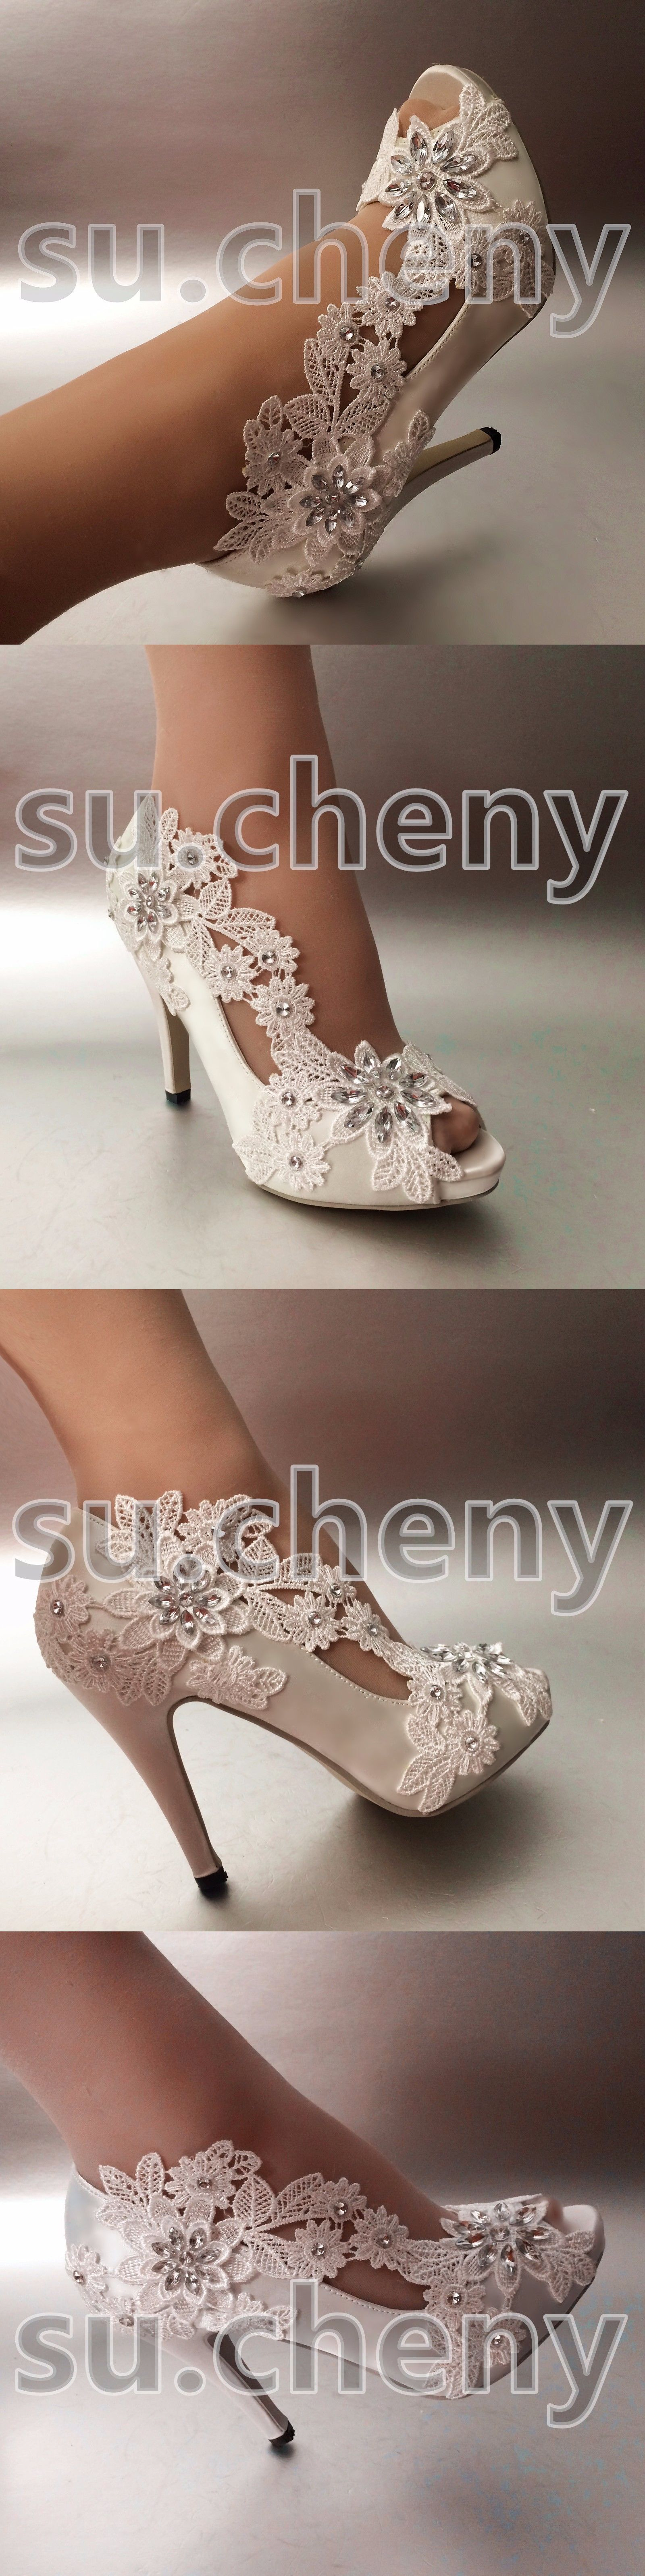 Wedding Shoes And Bridal Shoes: 34 Heel Satin White Ivory Lace ...